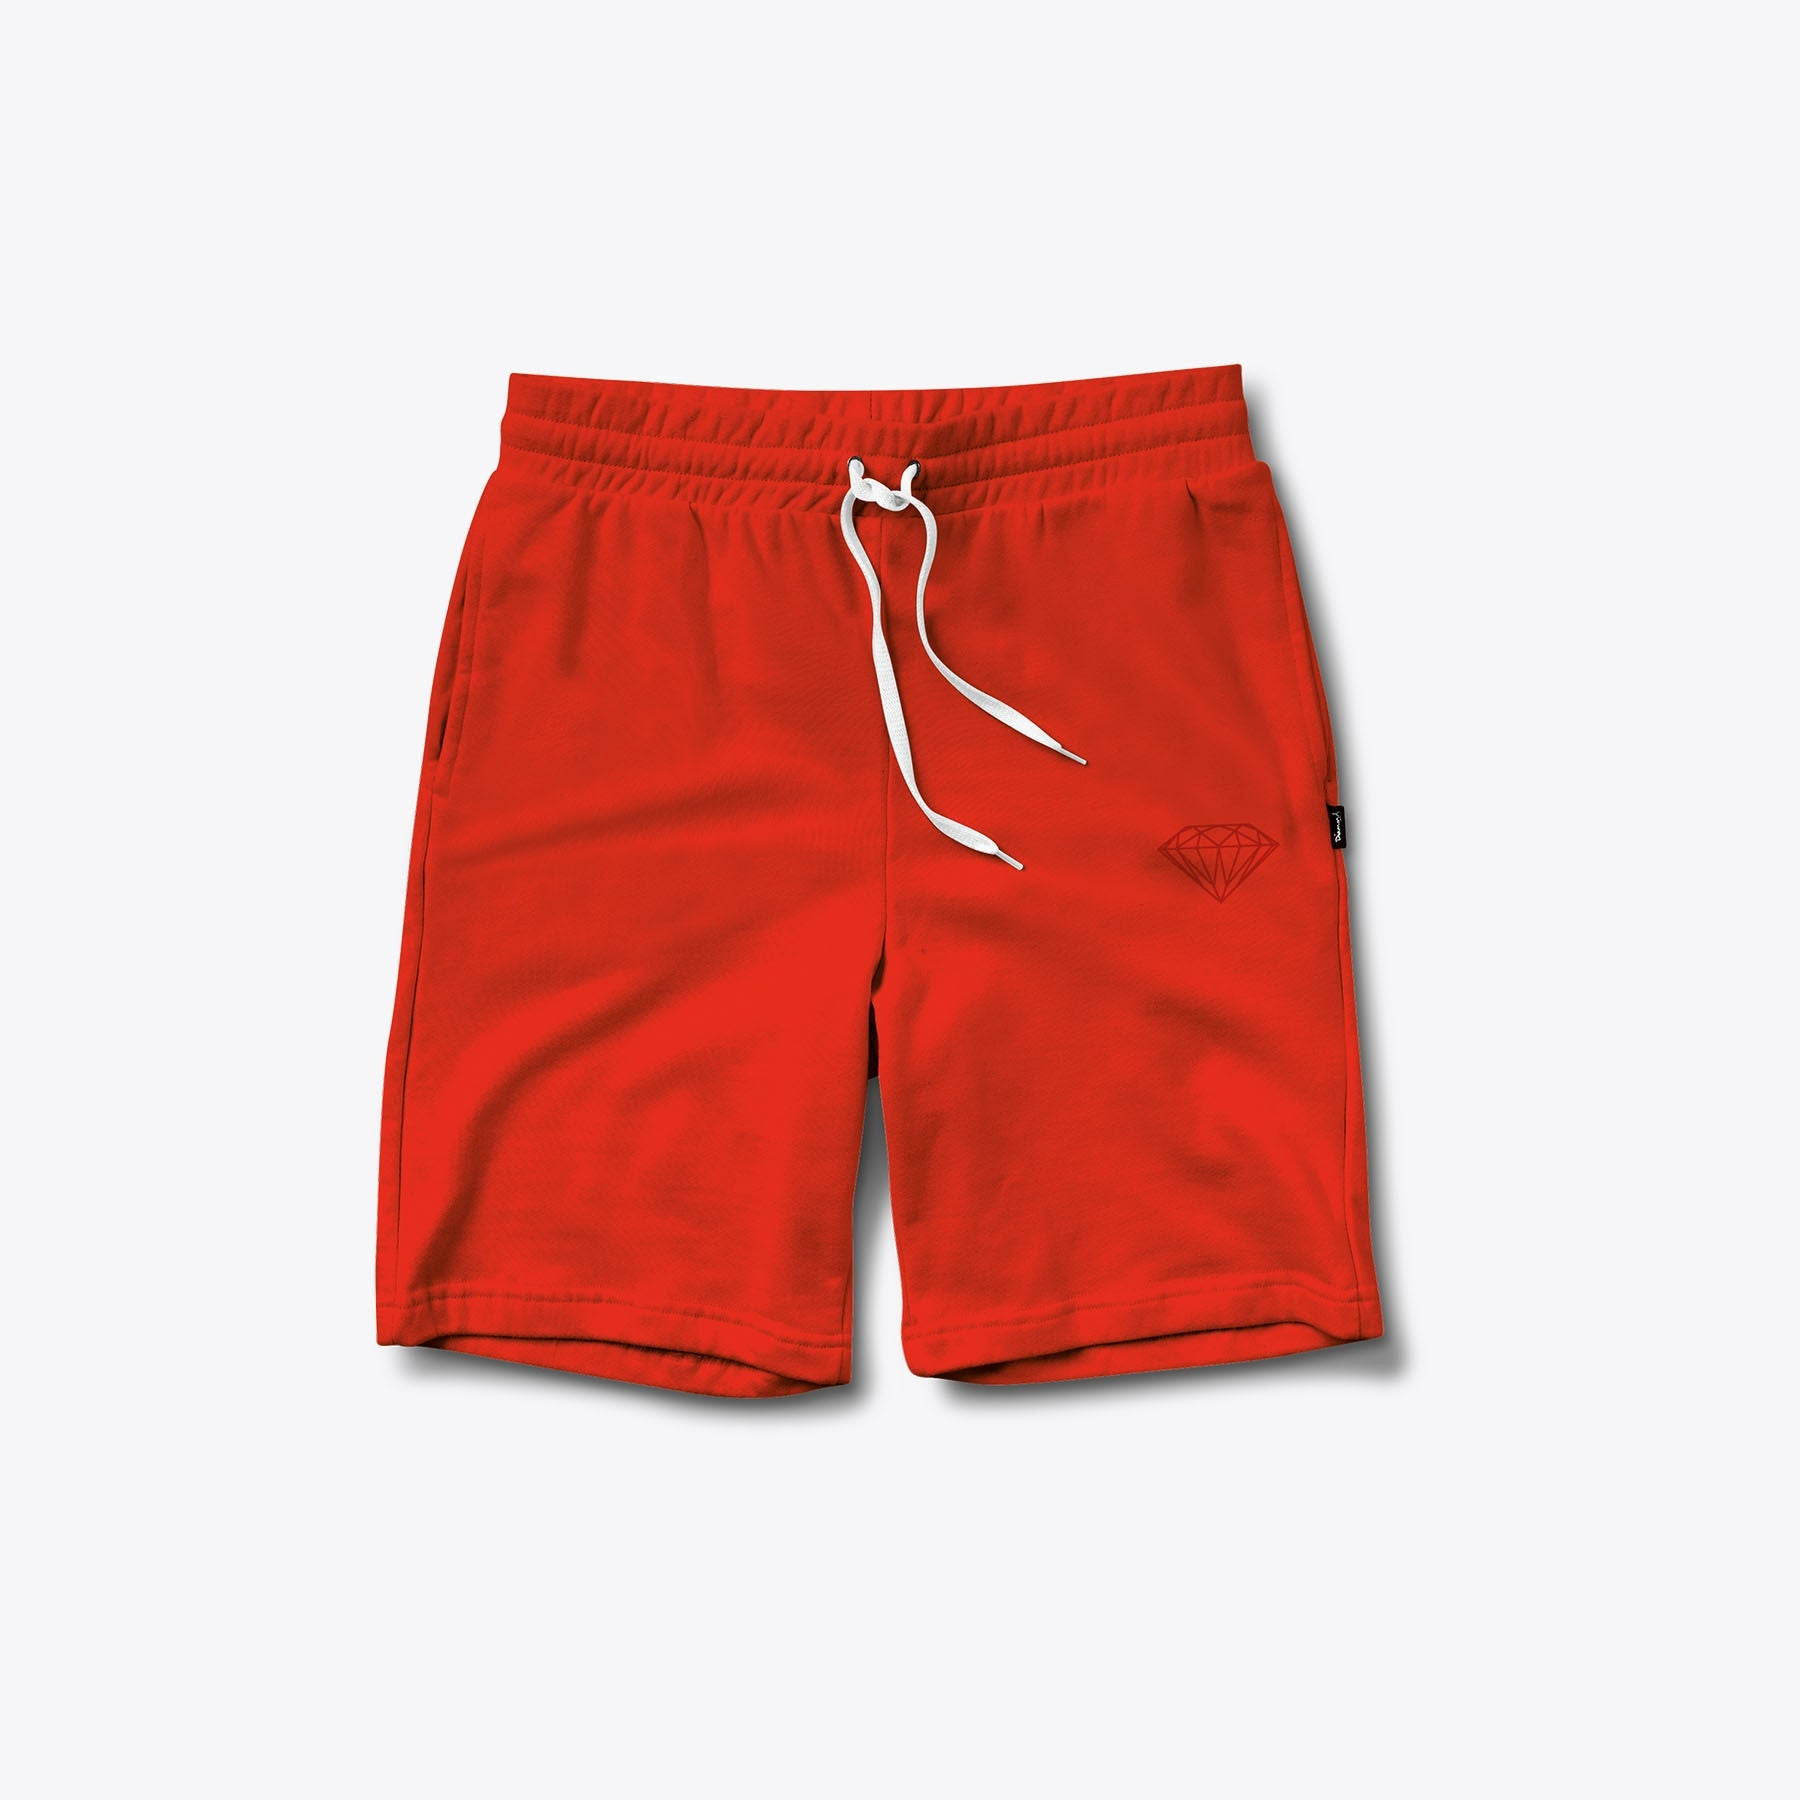 Tonal Chest Brilliant Sweatshorts (Red)